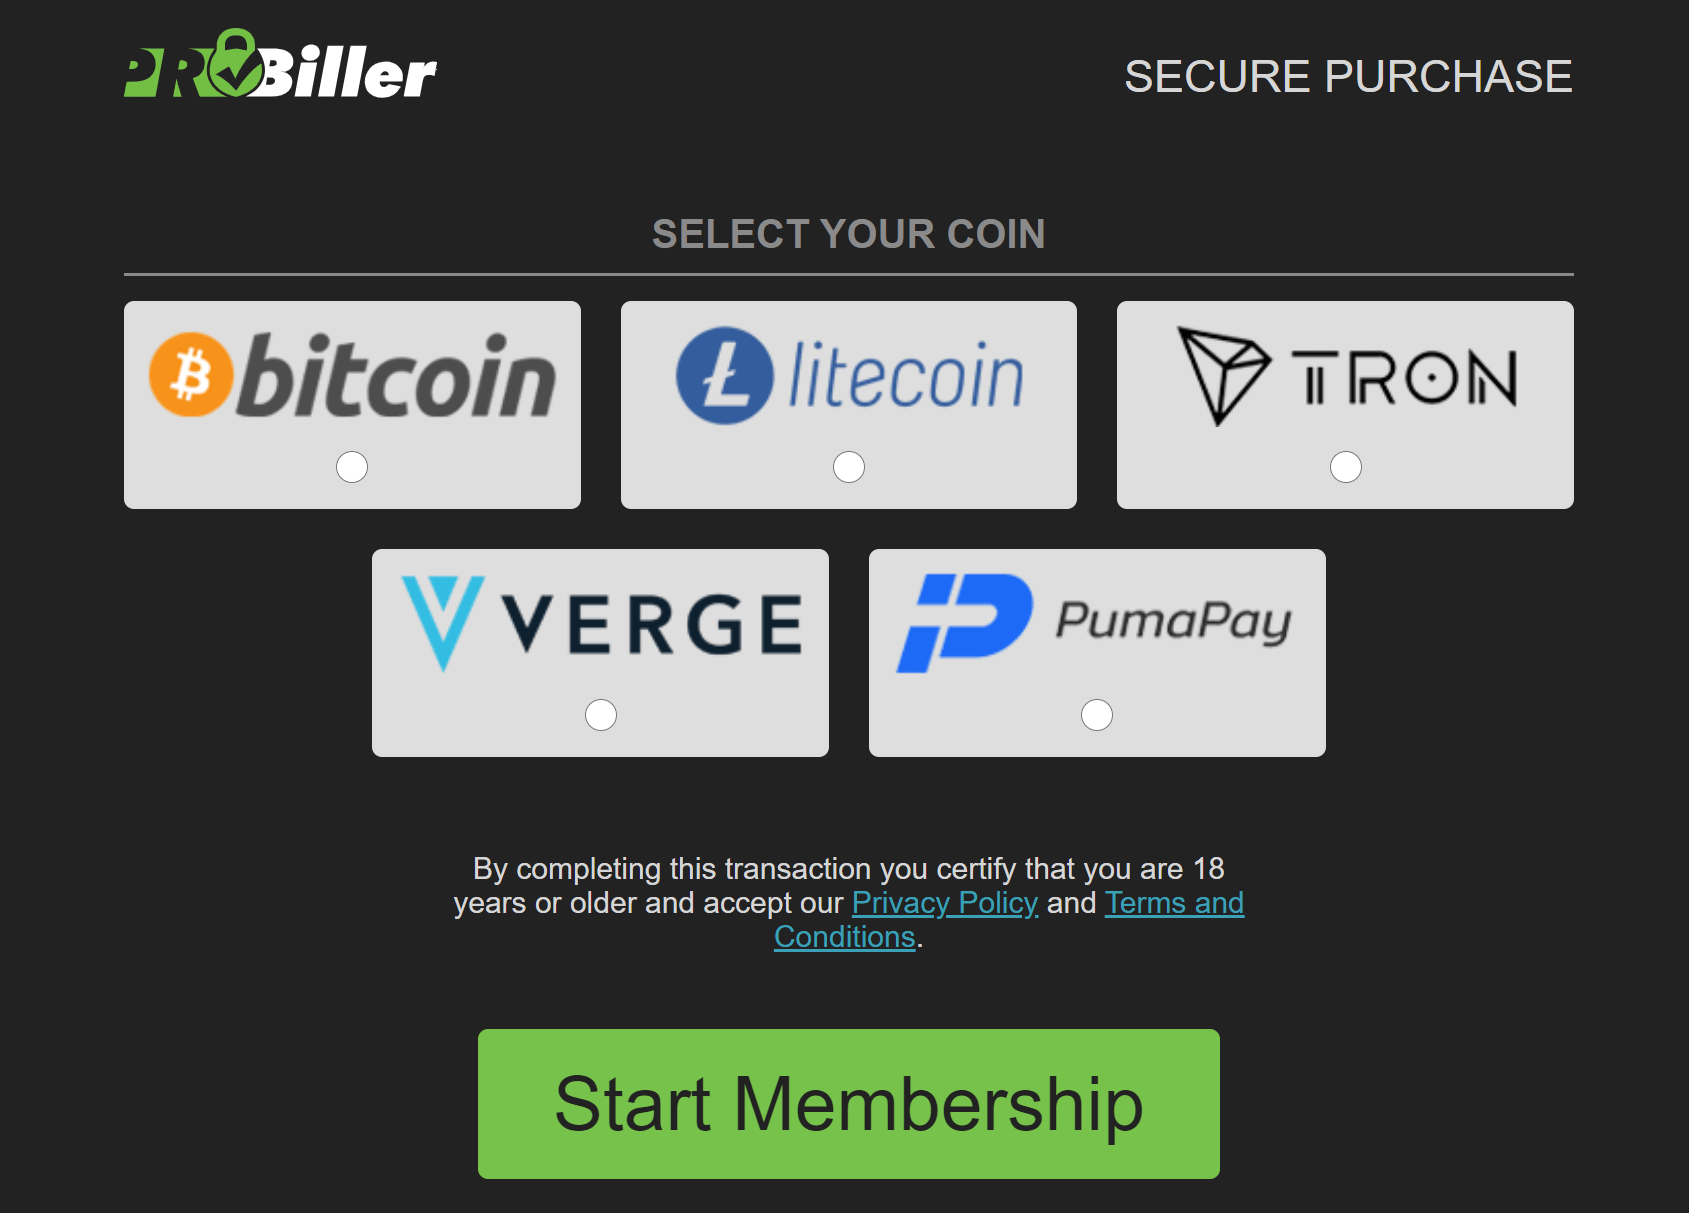 Pornhub Accepts Bitcoin: Top Adult Site Expands Cryptocurrency Payment Options